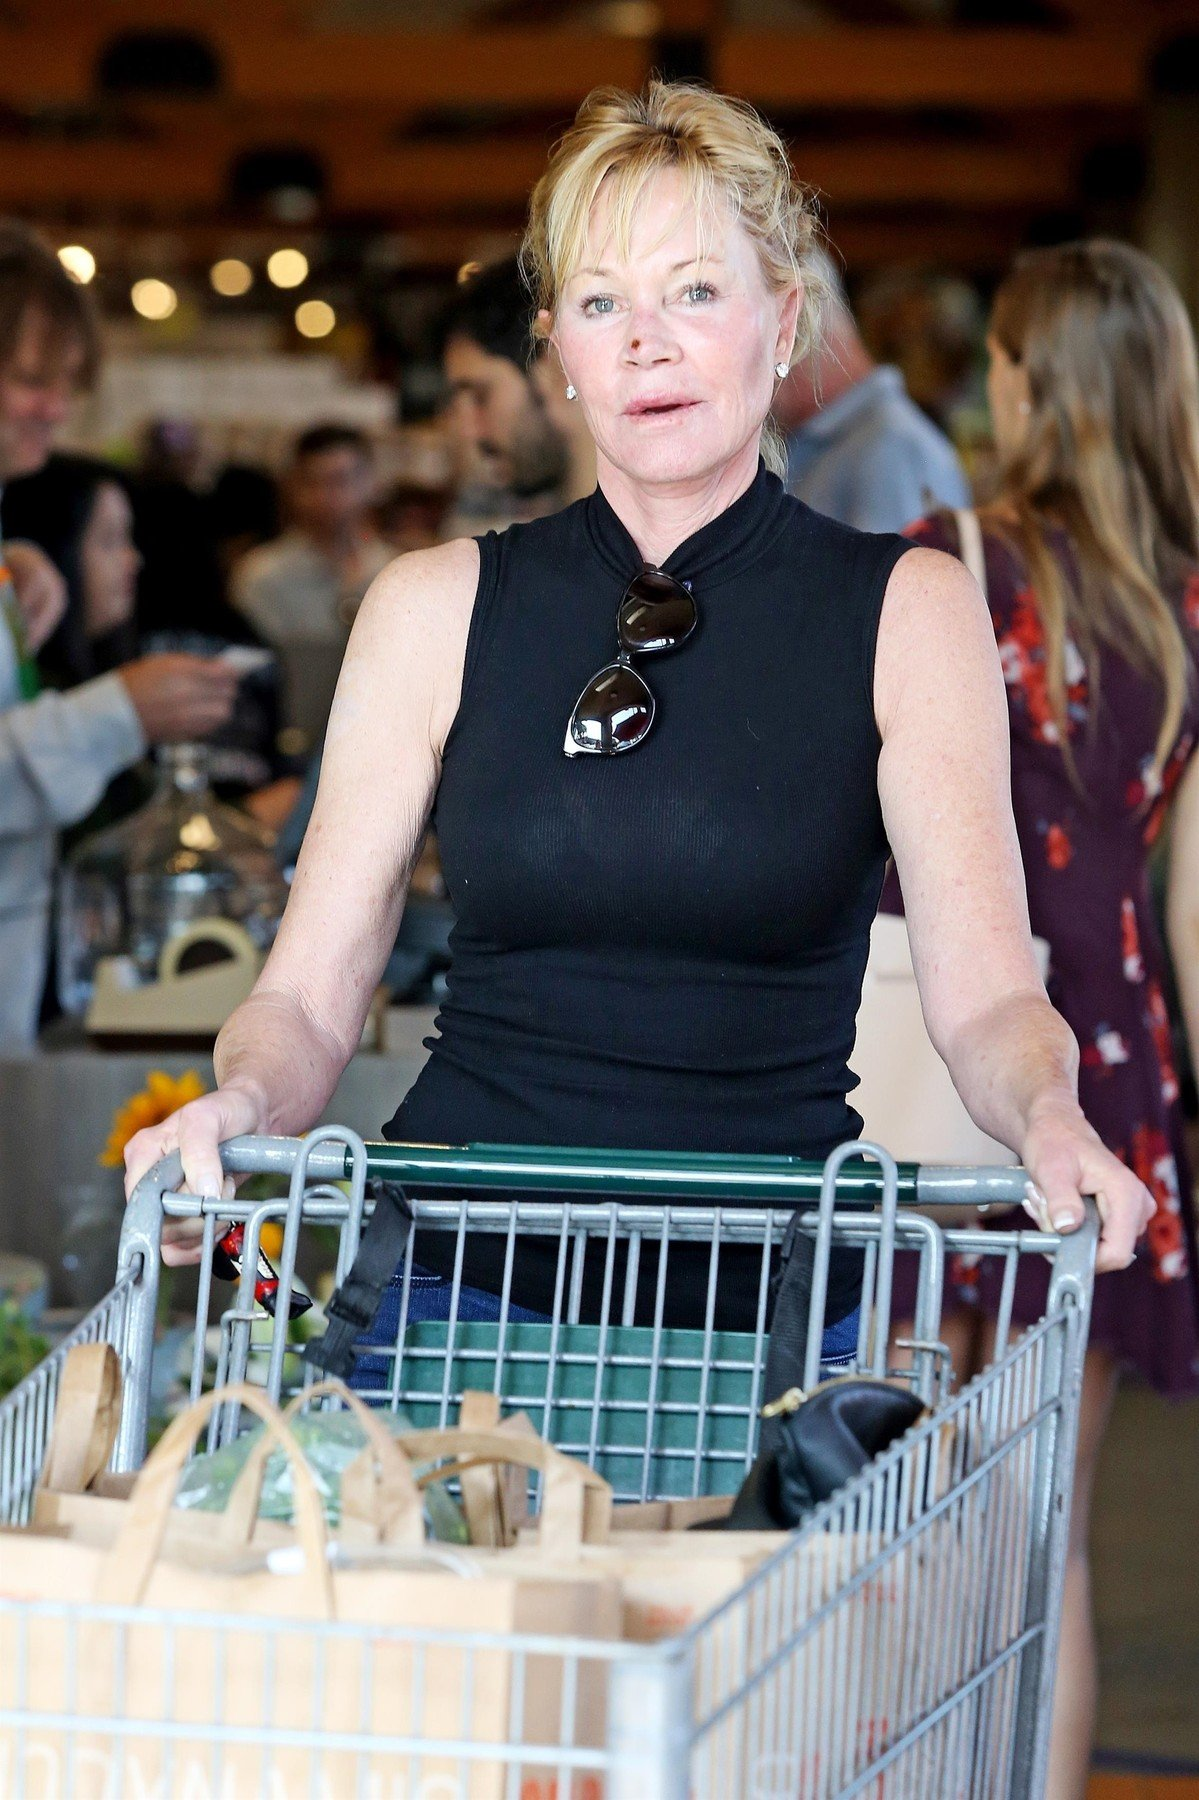 West Hollywood, CA  - *EXCLUSIVE* Melanie Griffith gets camera shy as she steps out for groceries at Bristol Farms with messy hair and no make up revealing a scab on her nose.  Pictured: Melanie Griffith  BACKGRID USA 8 SEPTEMBER 2017, Image: 348810694, License: Rights-managed, Restrictions: , Model Release: no, Credit line: Profimedia, AKM-GSI